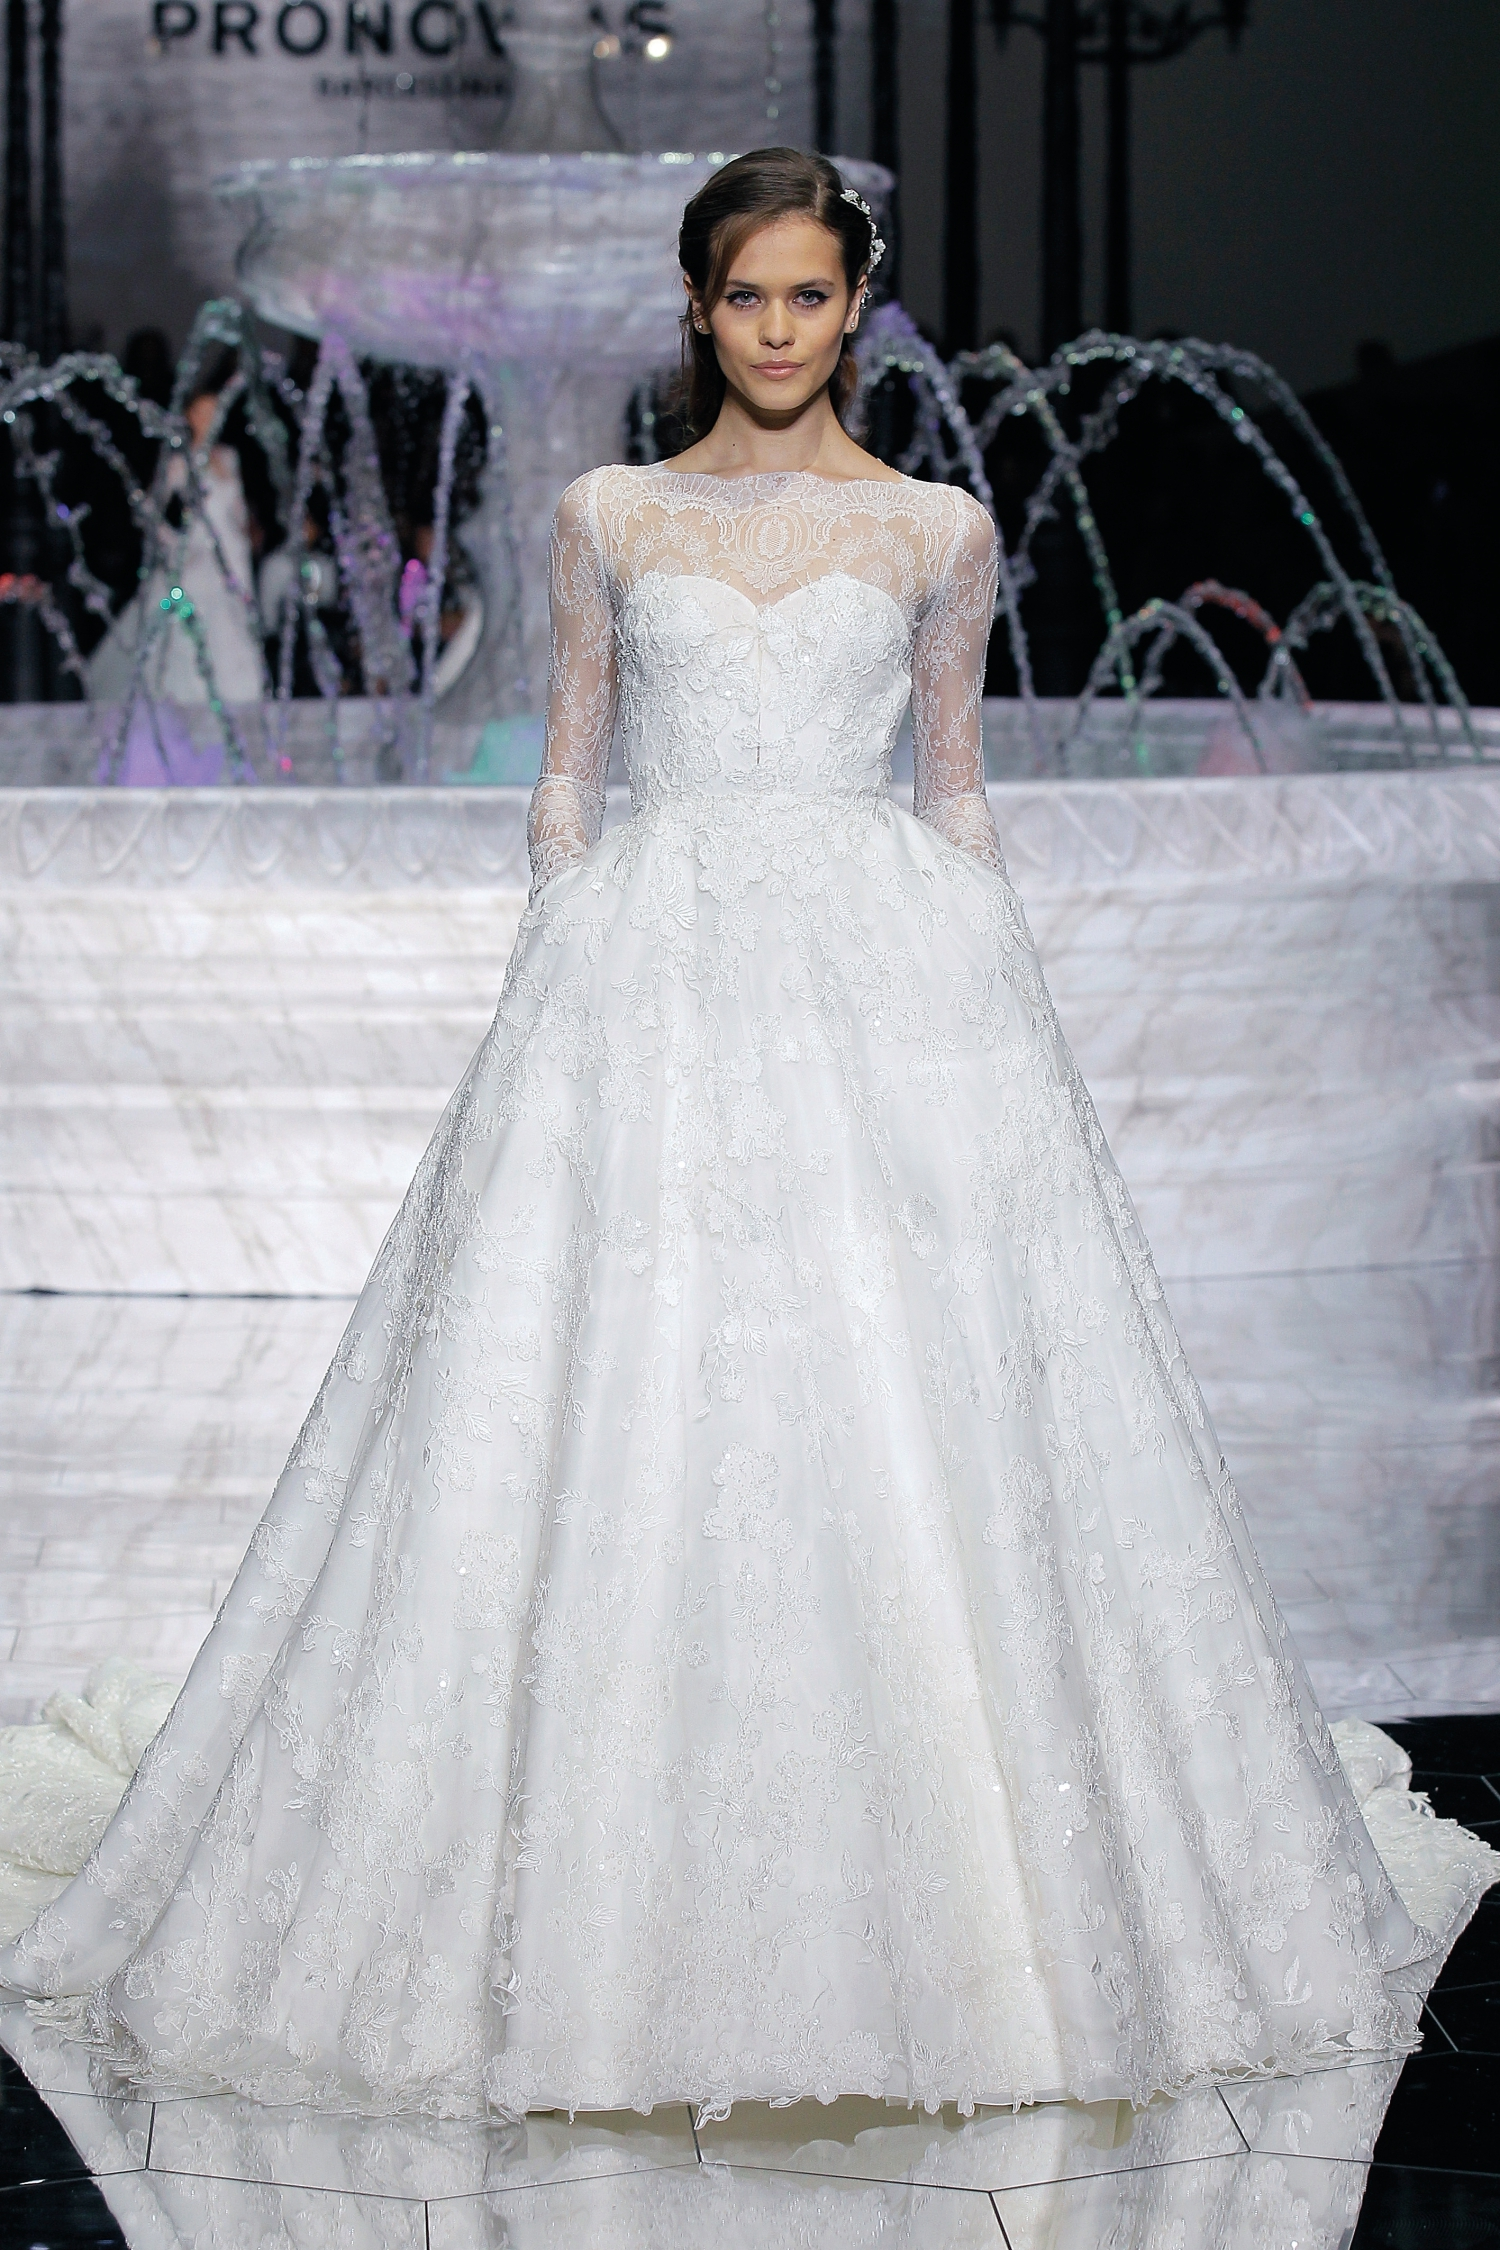 1-PRONOVIAS FASHION SHOW_Ruth